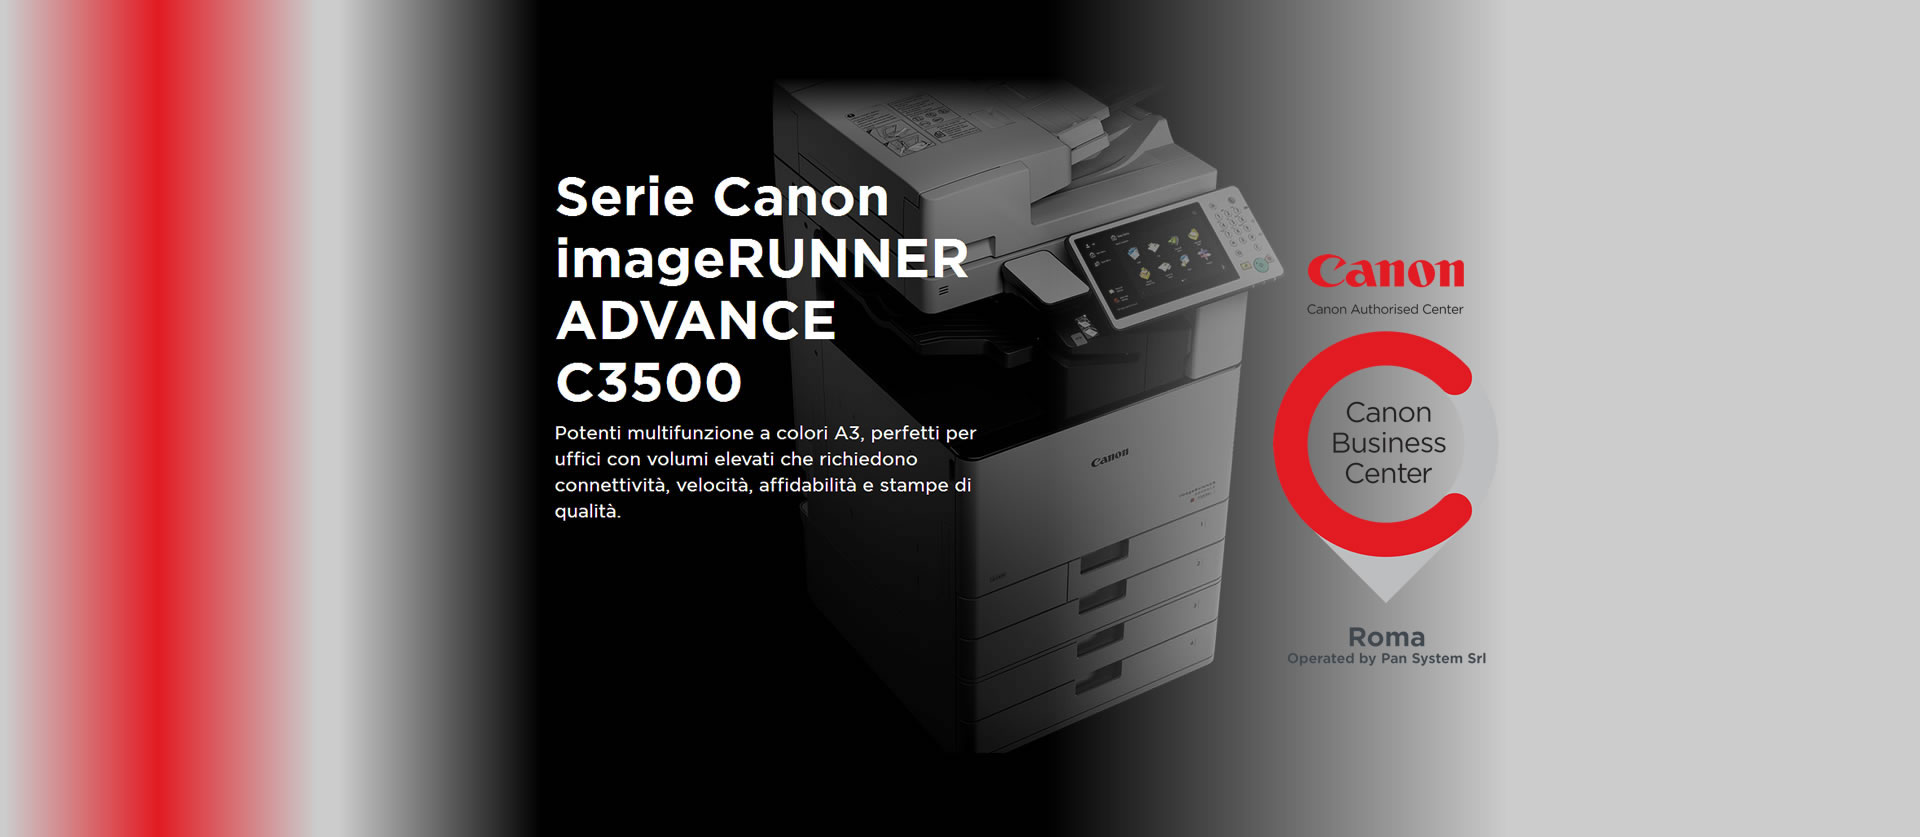 imageRUNNER ADVANCE C3500